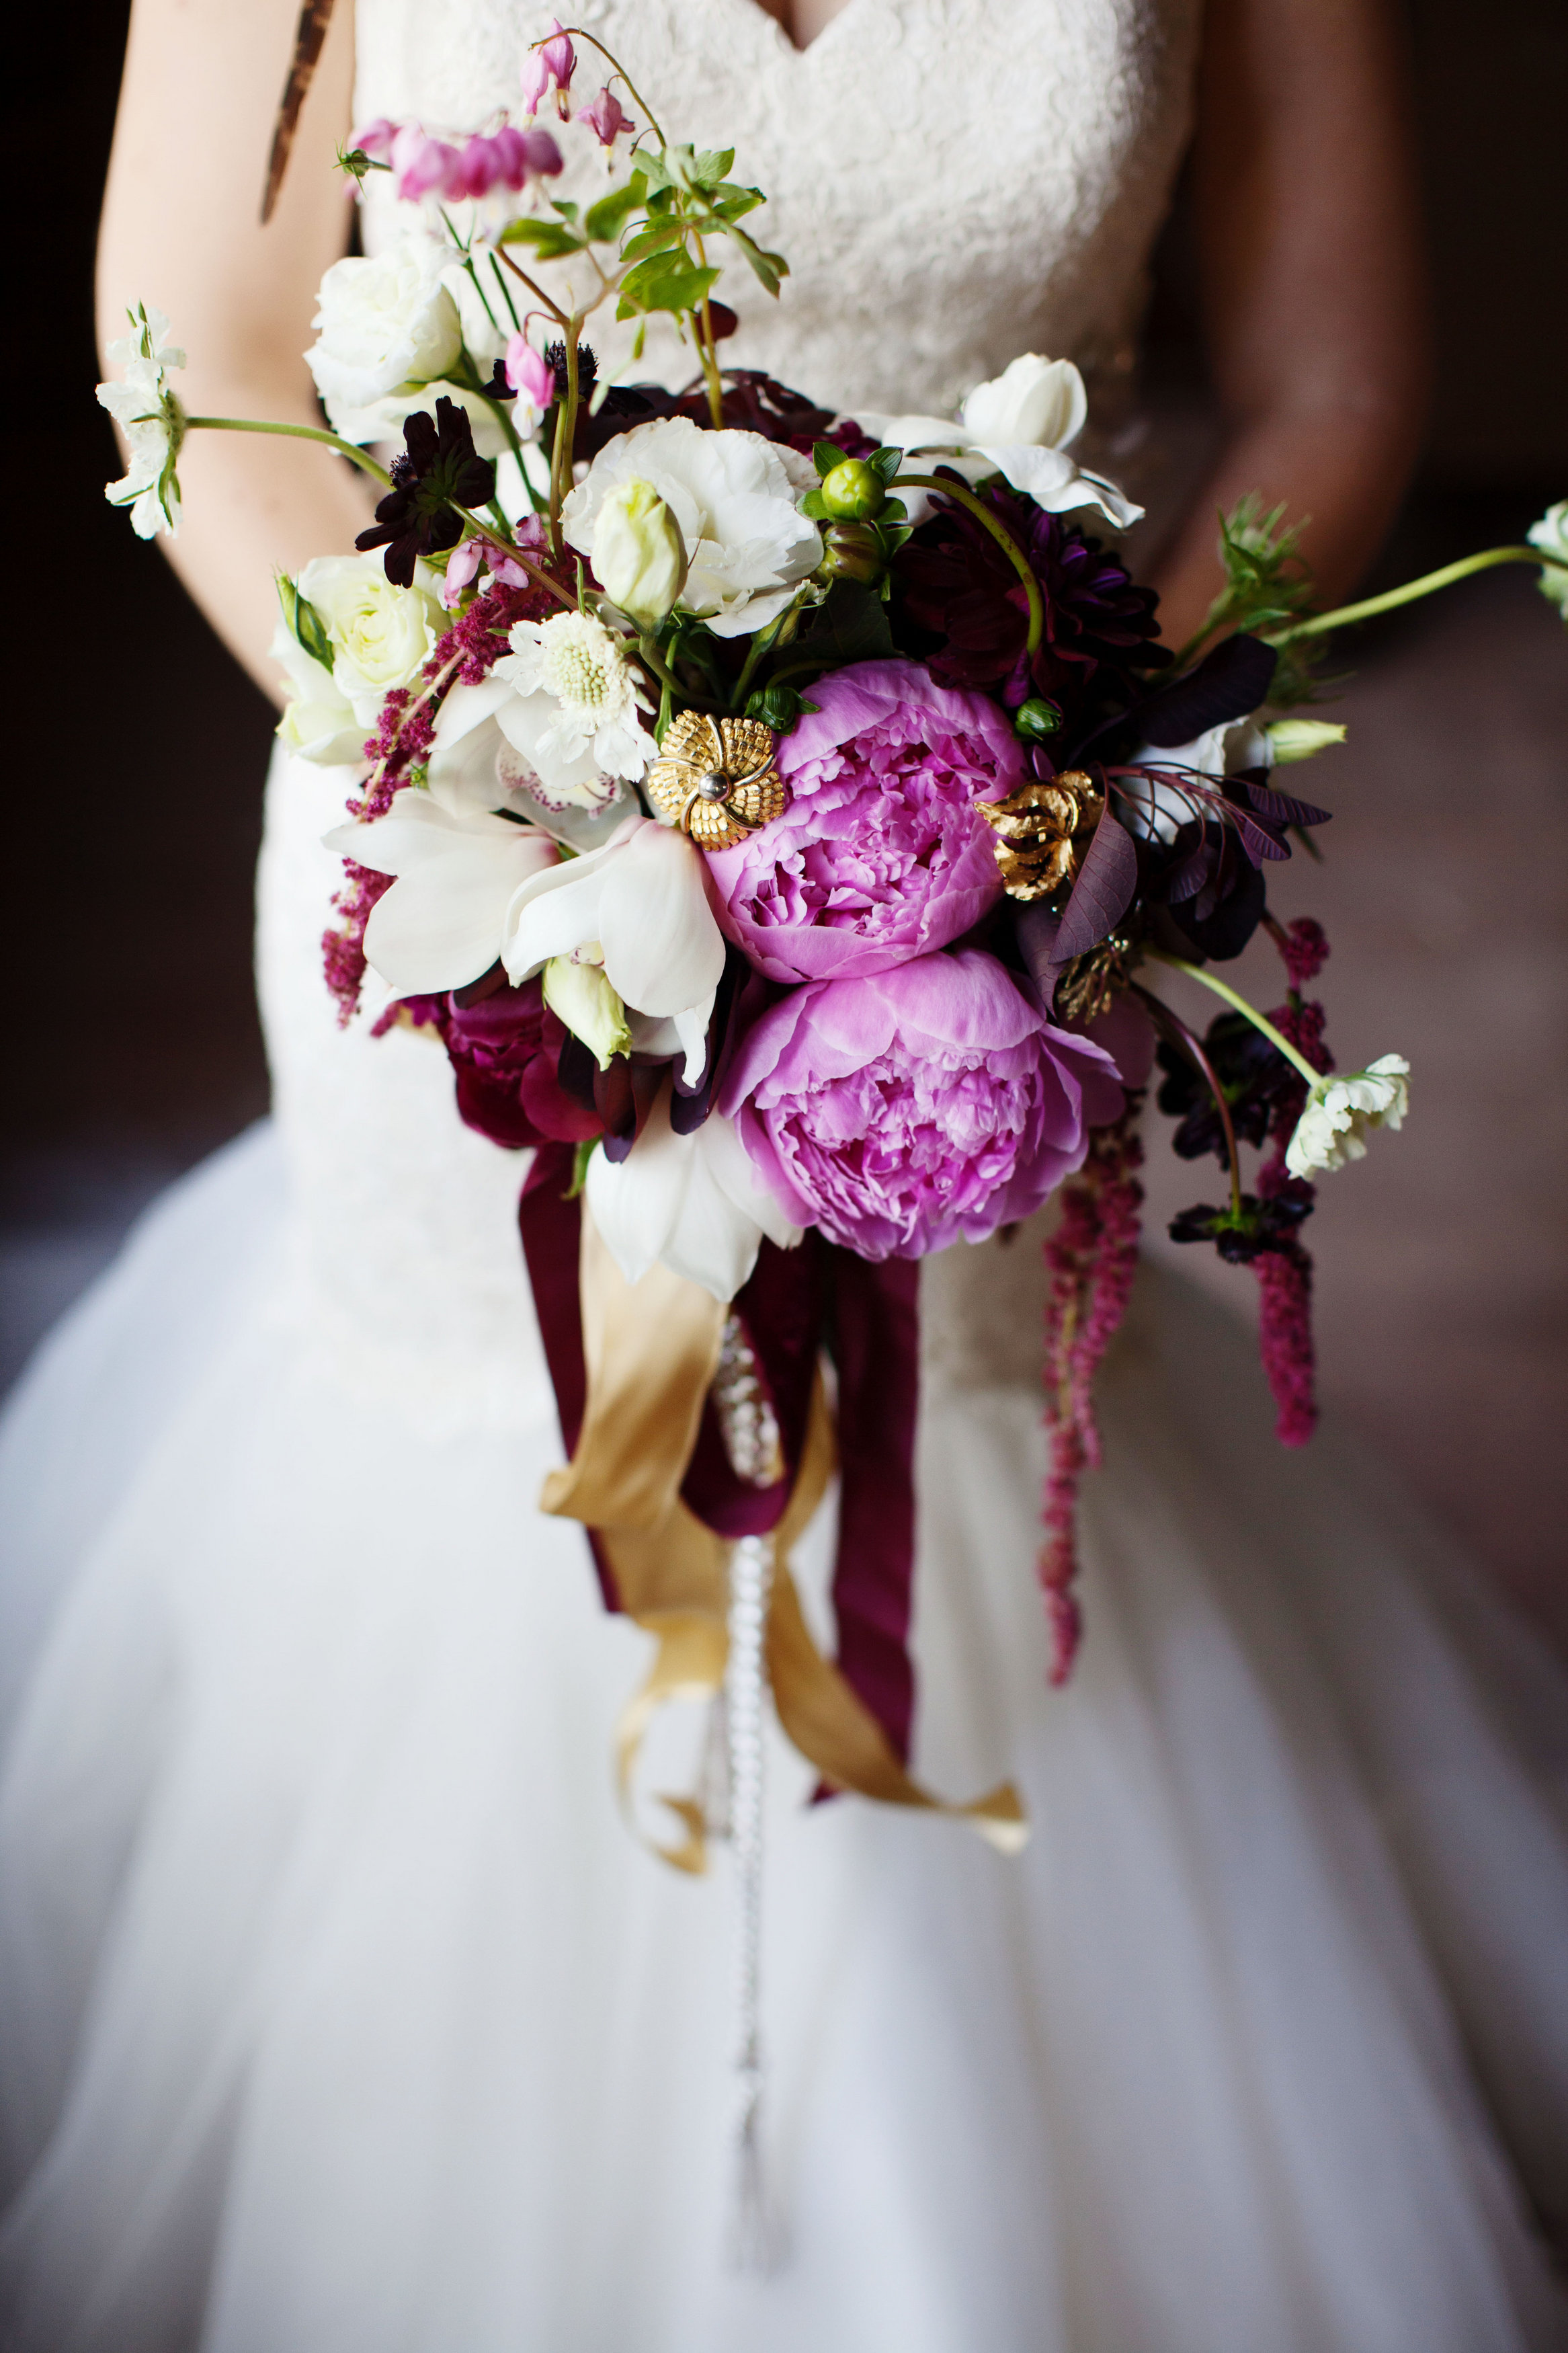 Peony and orchid bouquet with chocolate cosmos and bleeding hearts peony and orchid bouquet with chocolate cosmos and bleeding hearts by anastasia ehlers photo by anne nunn izmirmasajfo